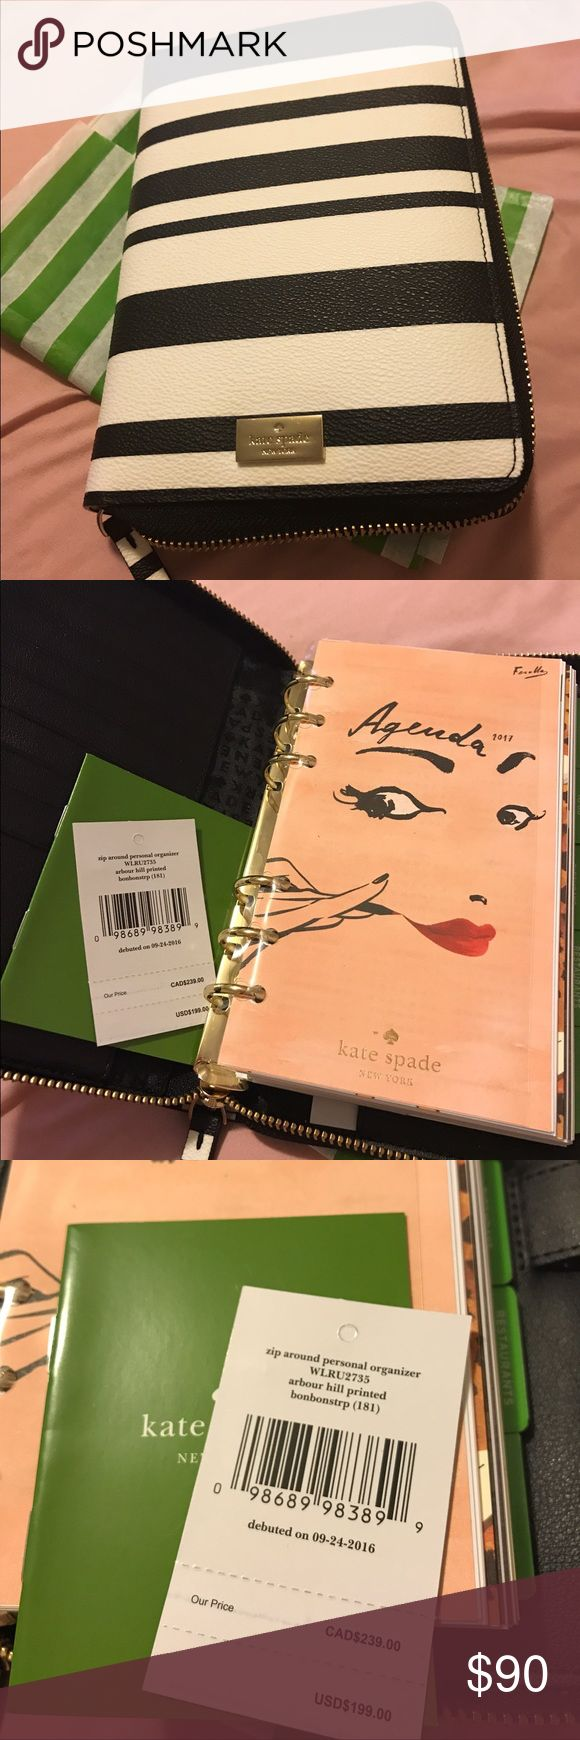 Kate Spade Agenda Planner Arbour Hill Brand new..Bought this a nmonth ago and never really used it since i bought another pink kate spade agenda... all inserts included.. kate spade Accessories